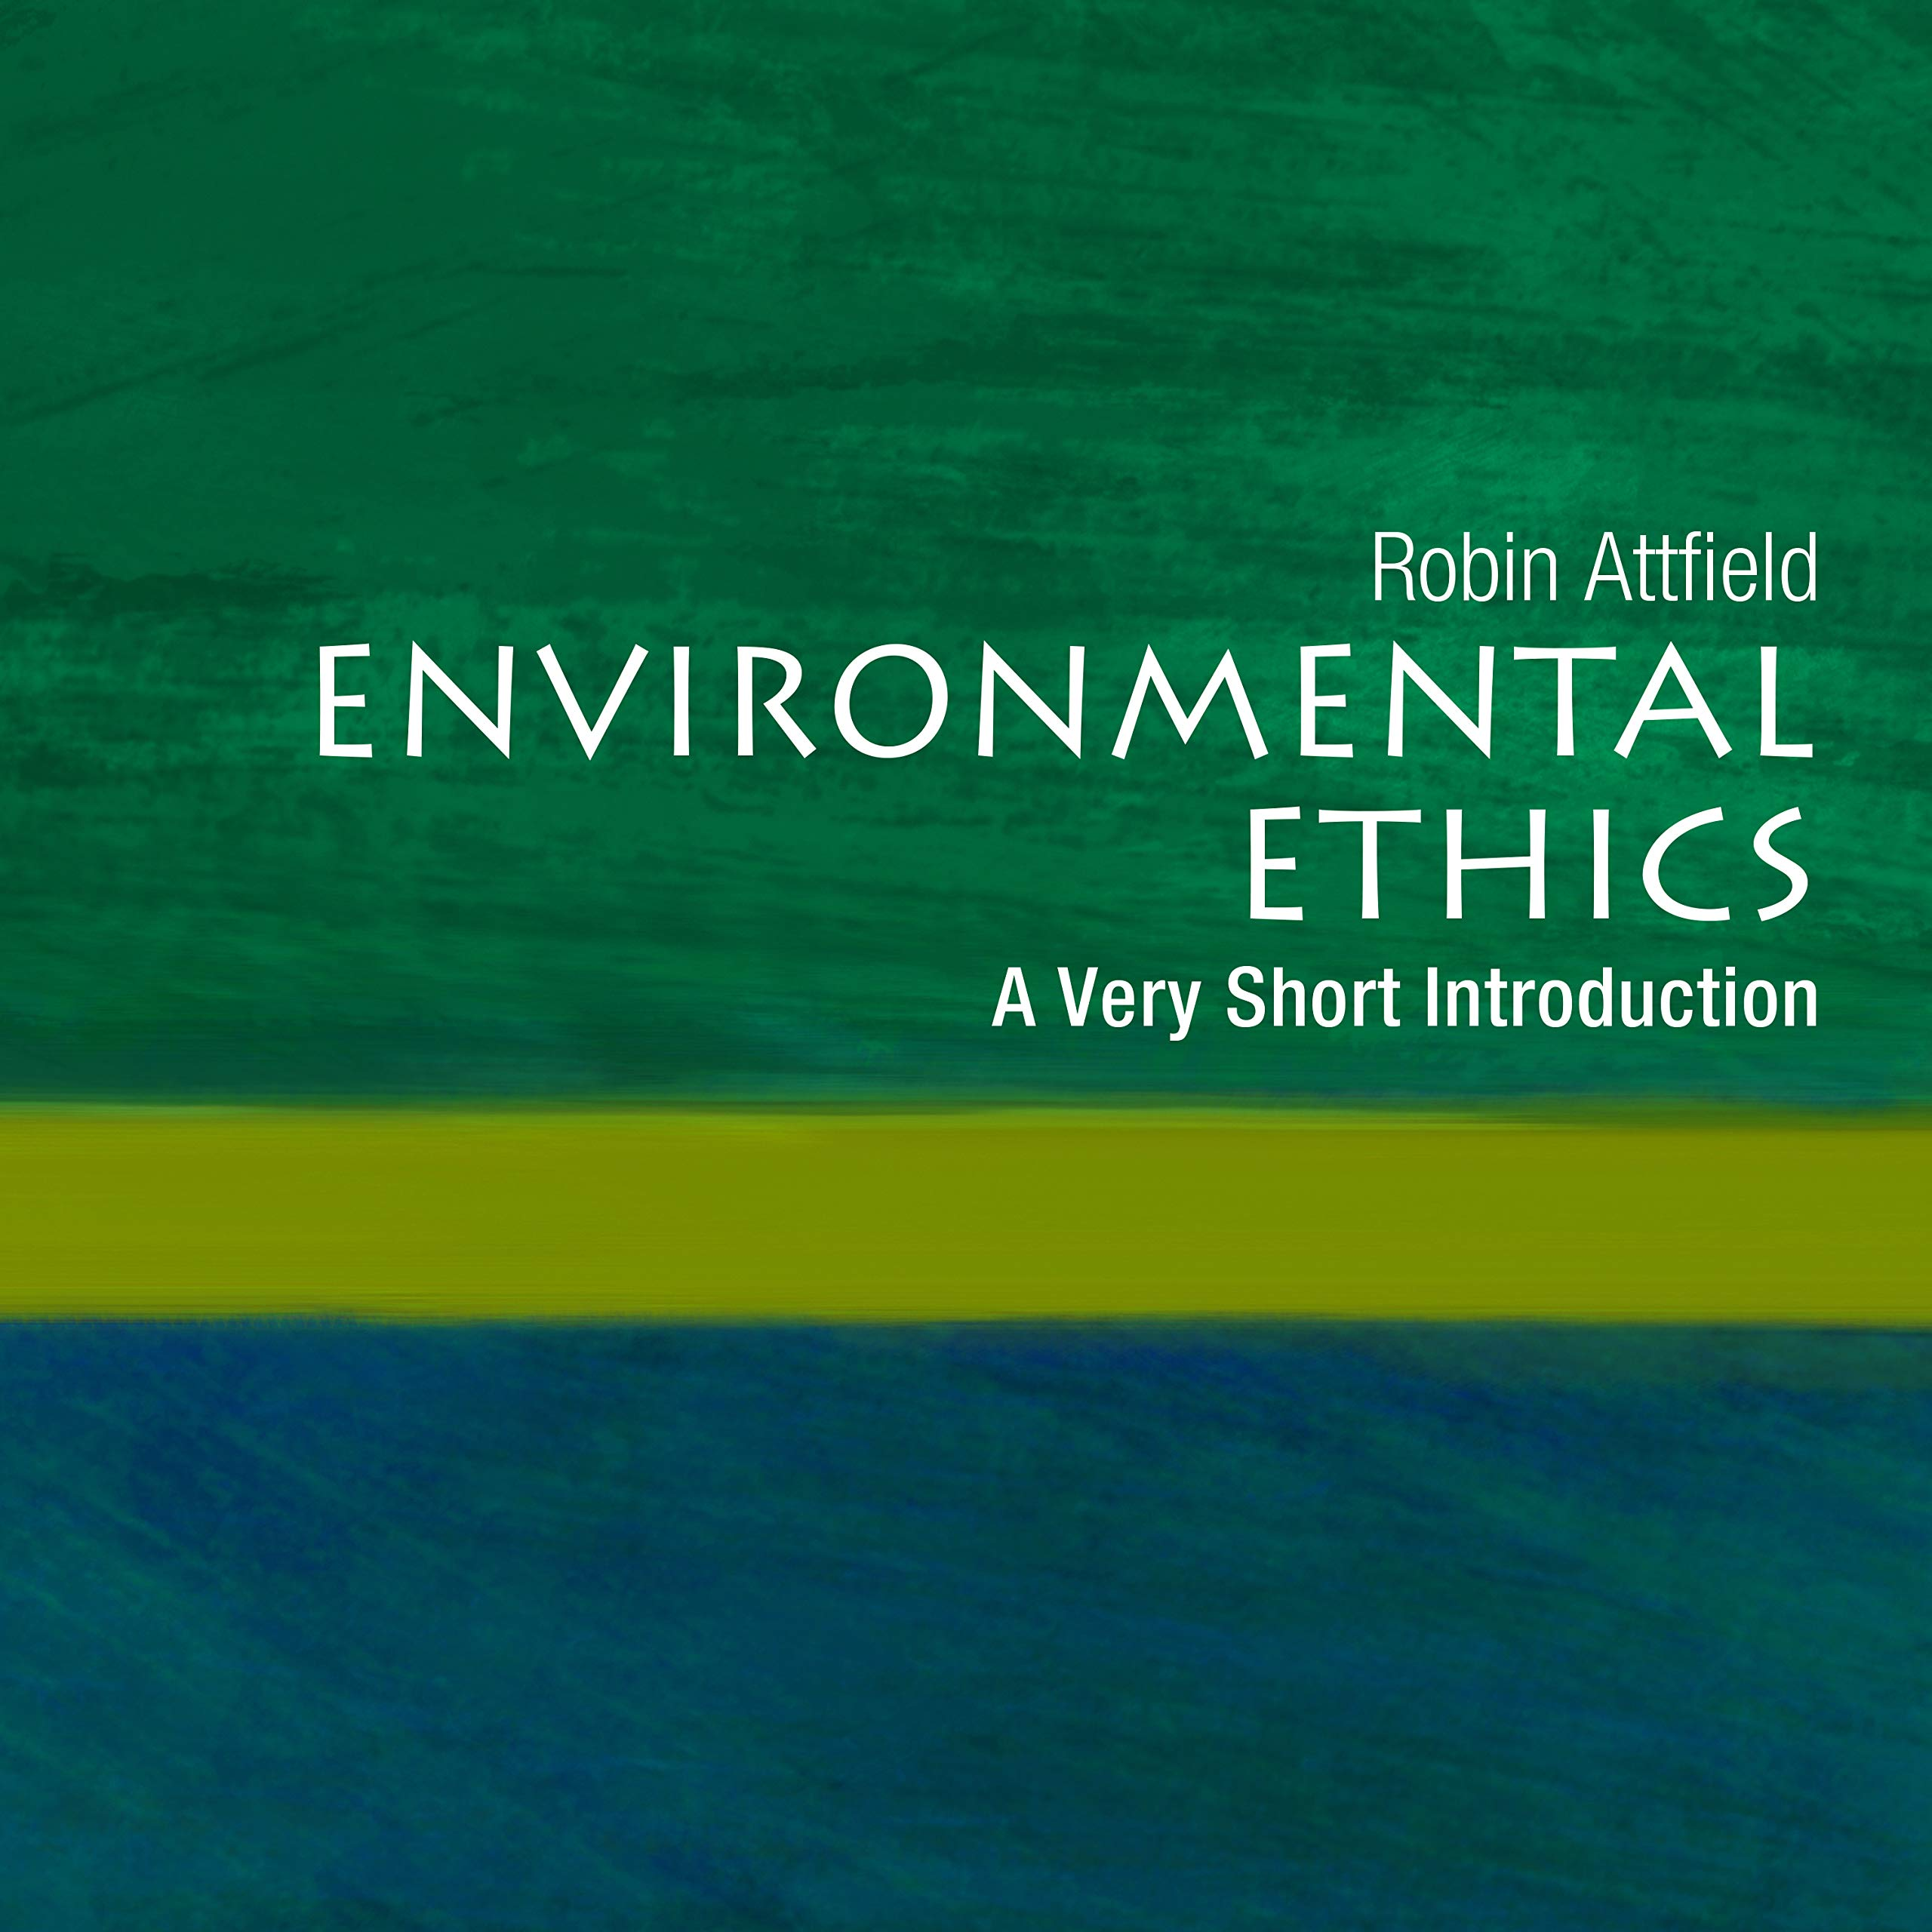 Environmental ethics review based on the greatest possible protection of the interests of future generations and morals condition of everything living